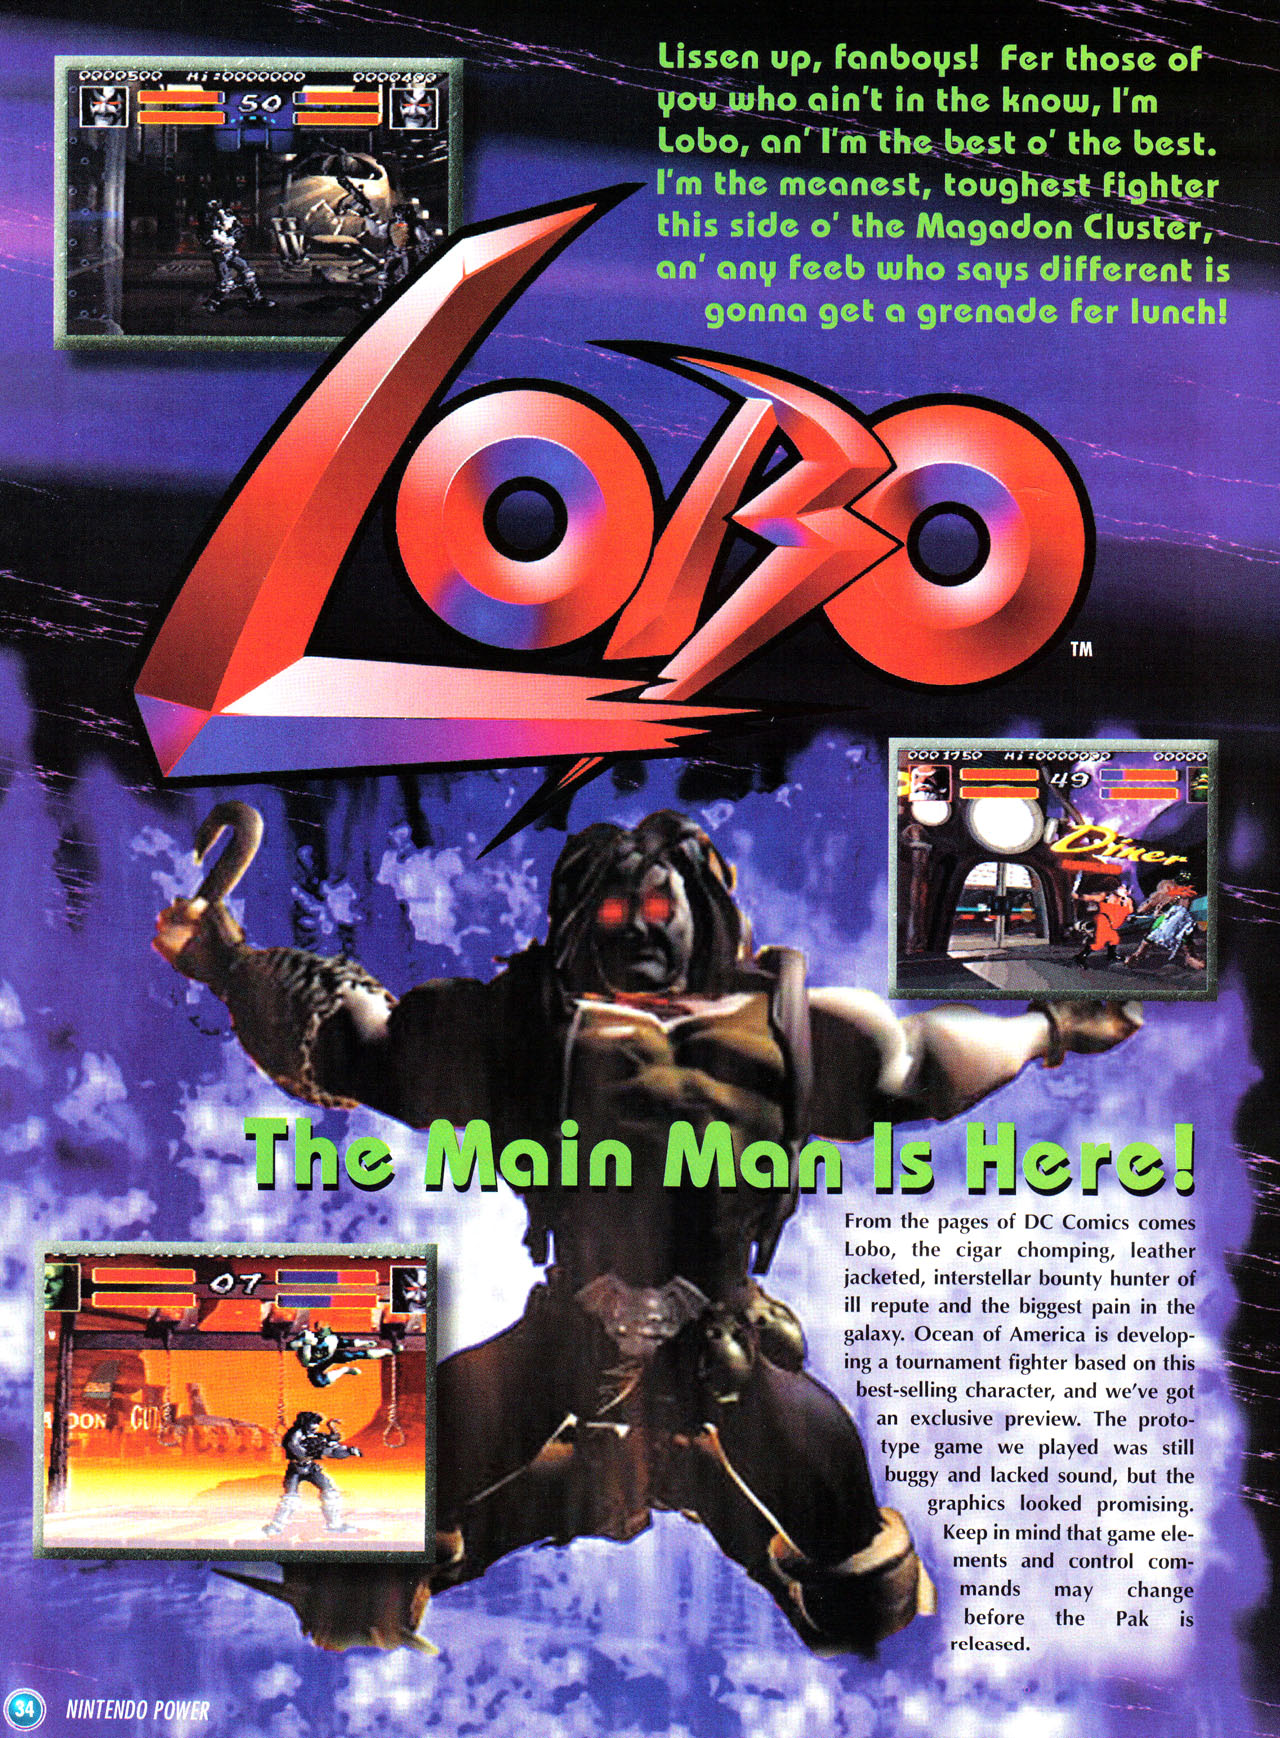 Lobo SNES Nintendo Power Page 34.jpg